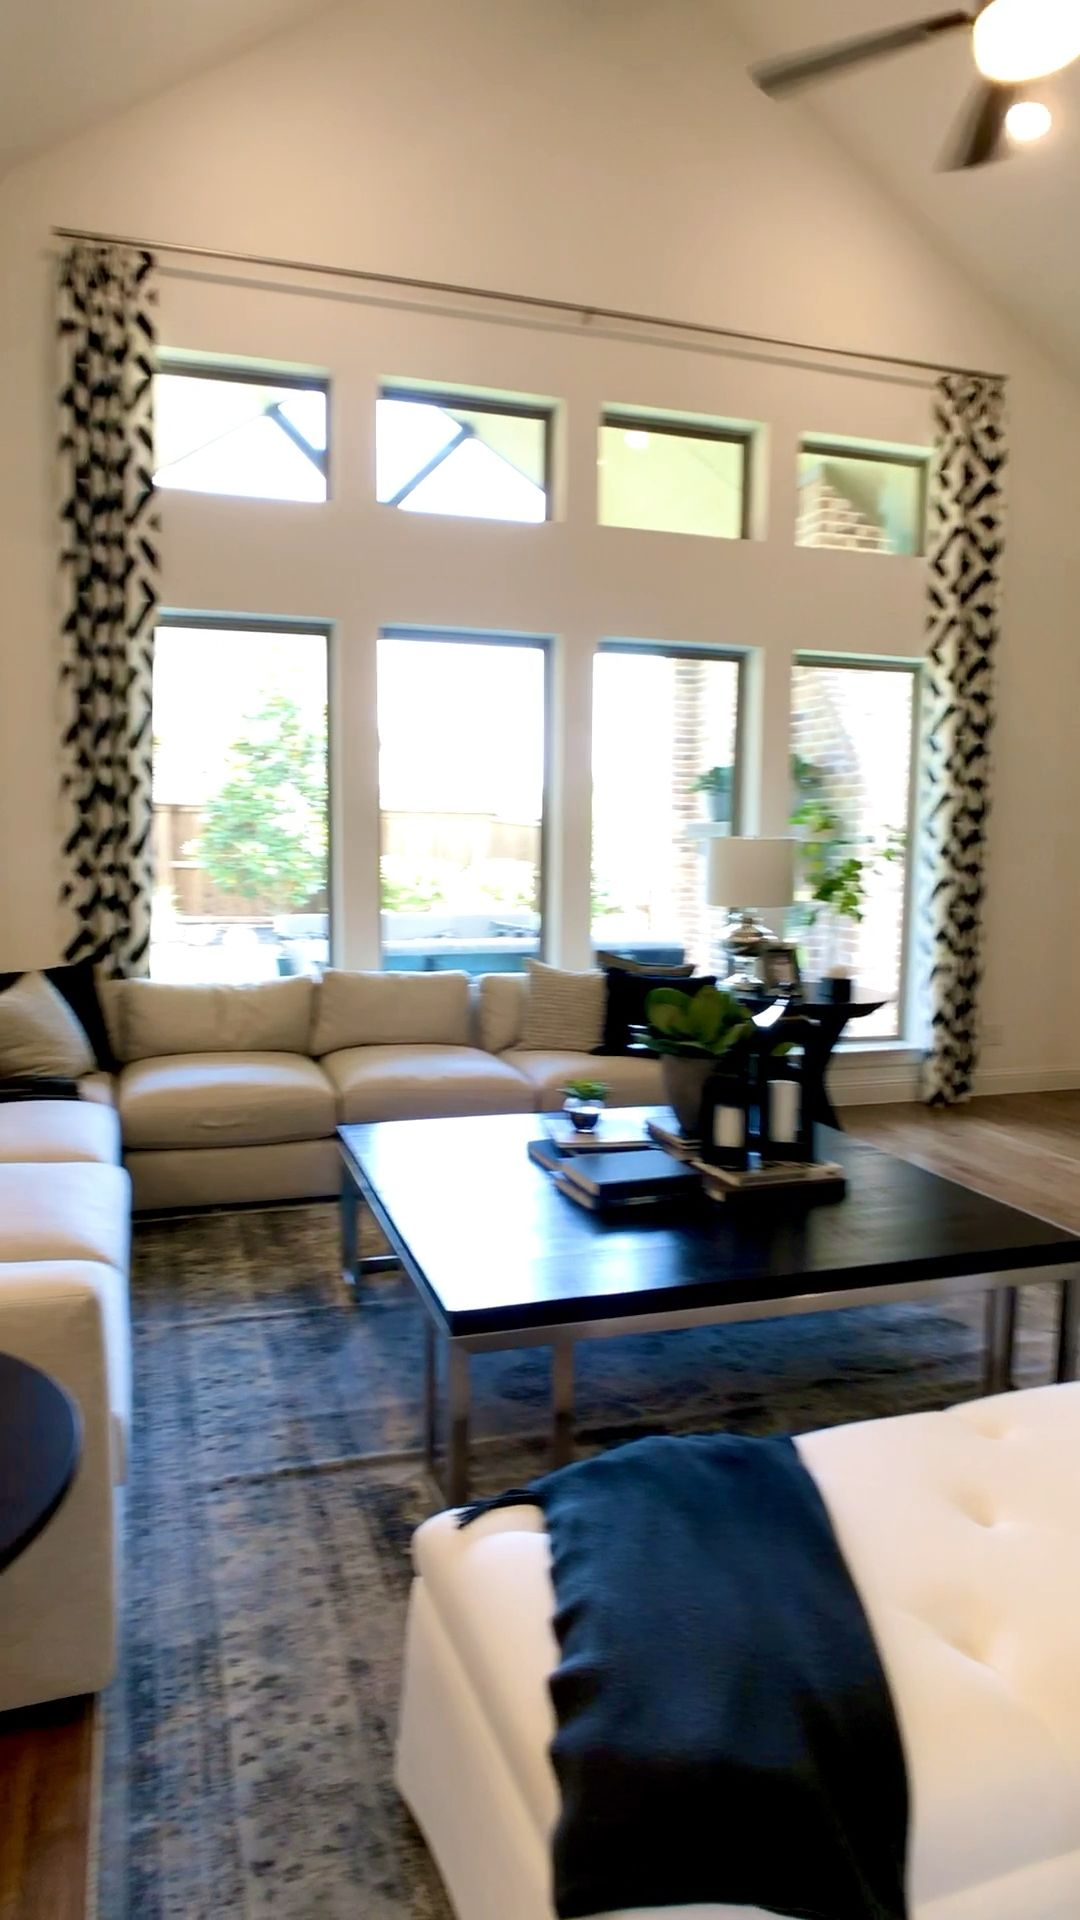 Beautiful model home tour with open floorplan living room & kitchen with a wallpaper design in the dining room...video by THE DECORATING COACH... Click to see more model home photos for decorating inspiration... #decoratingideas #decoratingtips #openconcept #livingroomdecor